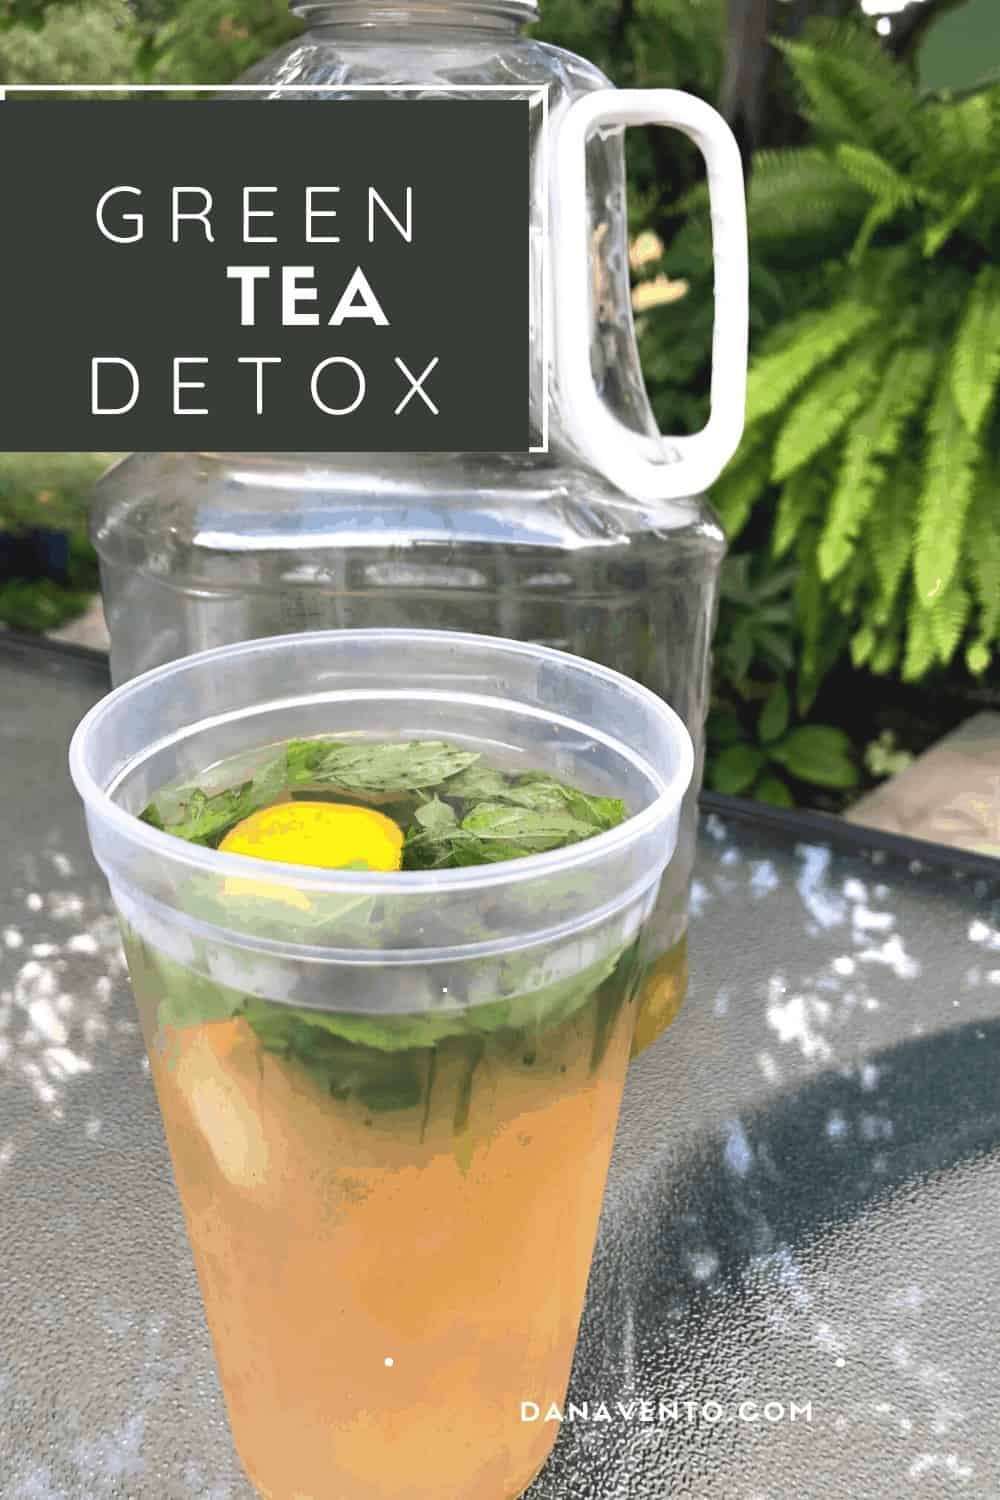 DETOX Tea for Belly Bloat. GREEN TEA IN PITCHER AND GLASS